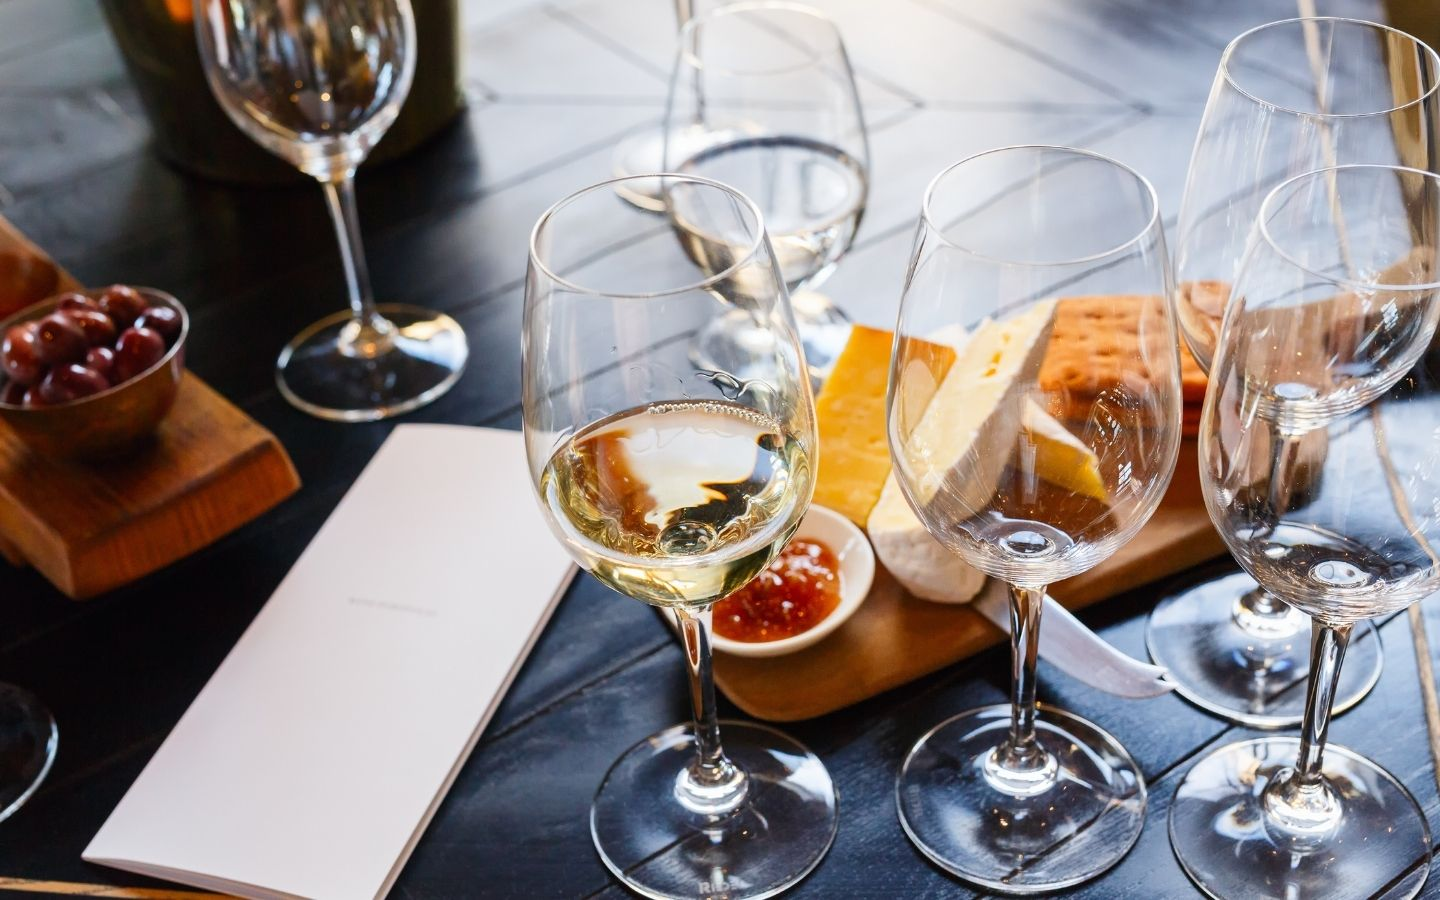 Table topped with assorted wine glasses, fruit, cheeses and breads for tasting